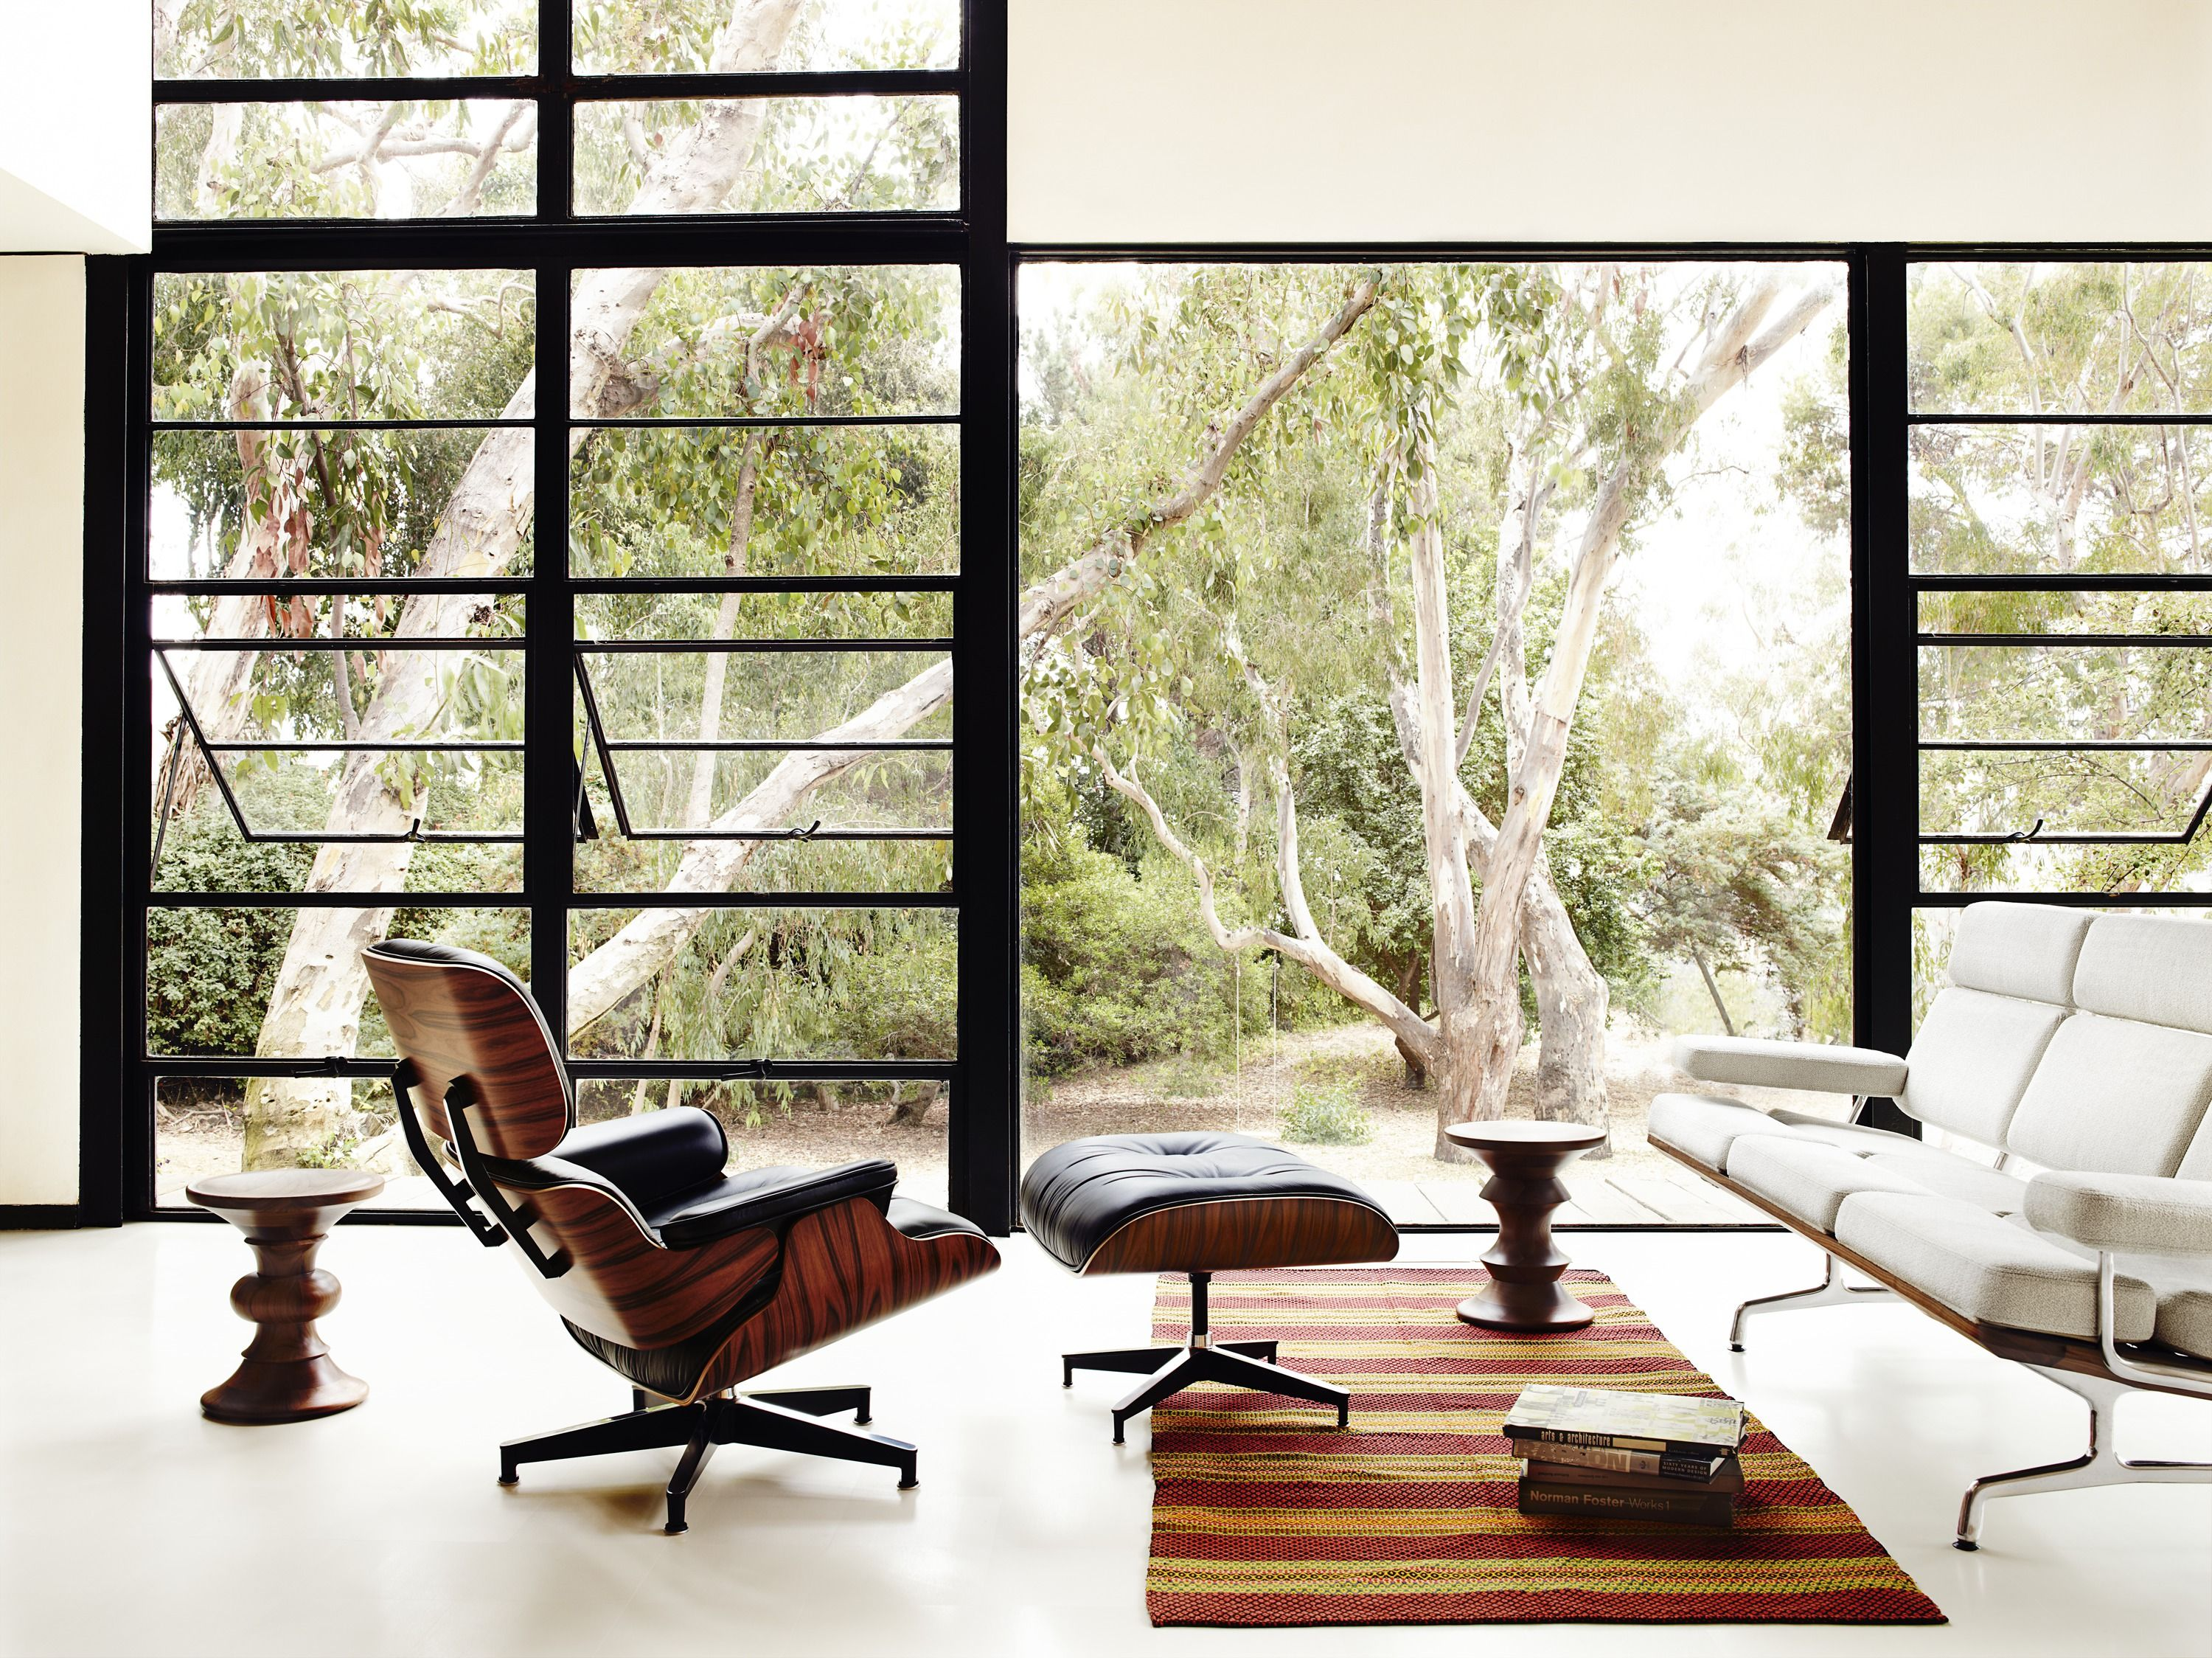 Picture of: What Is An Eames Lounge Chair Eames Lounge Chair Style